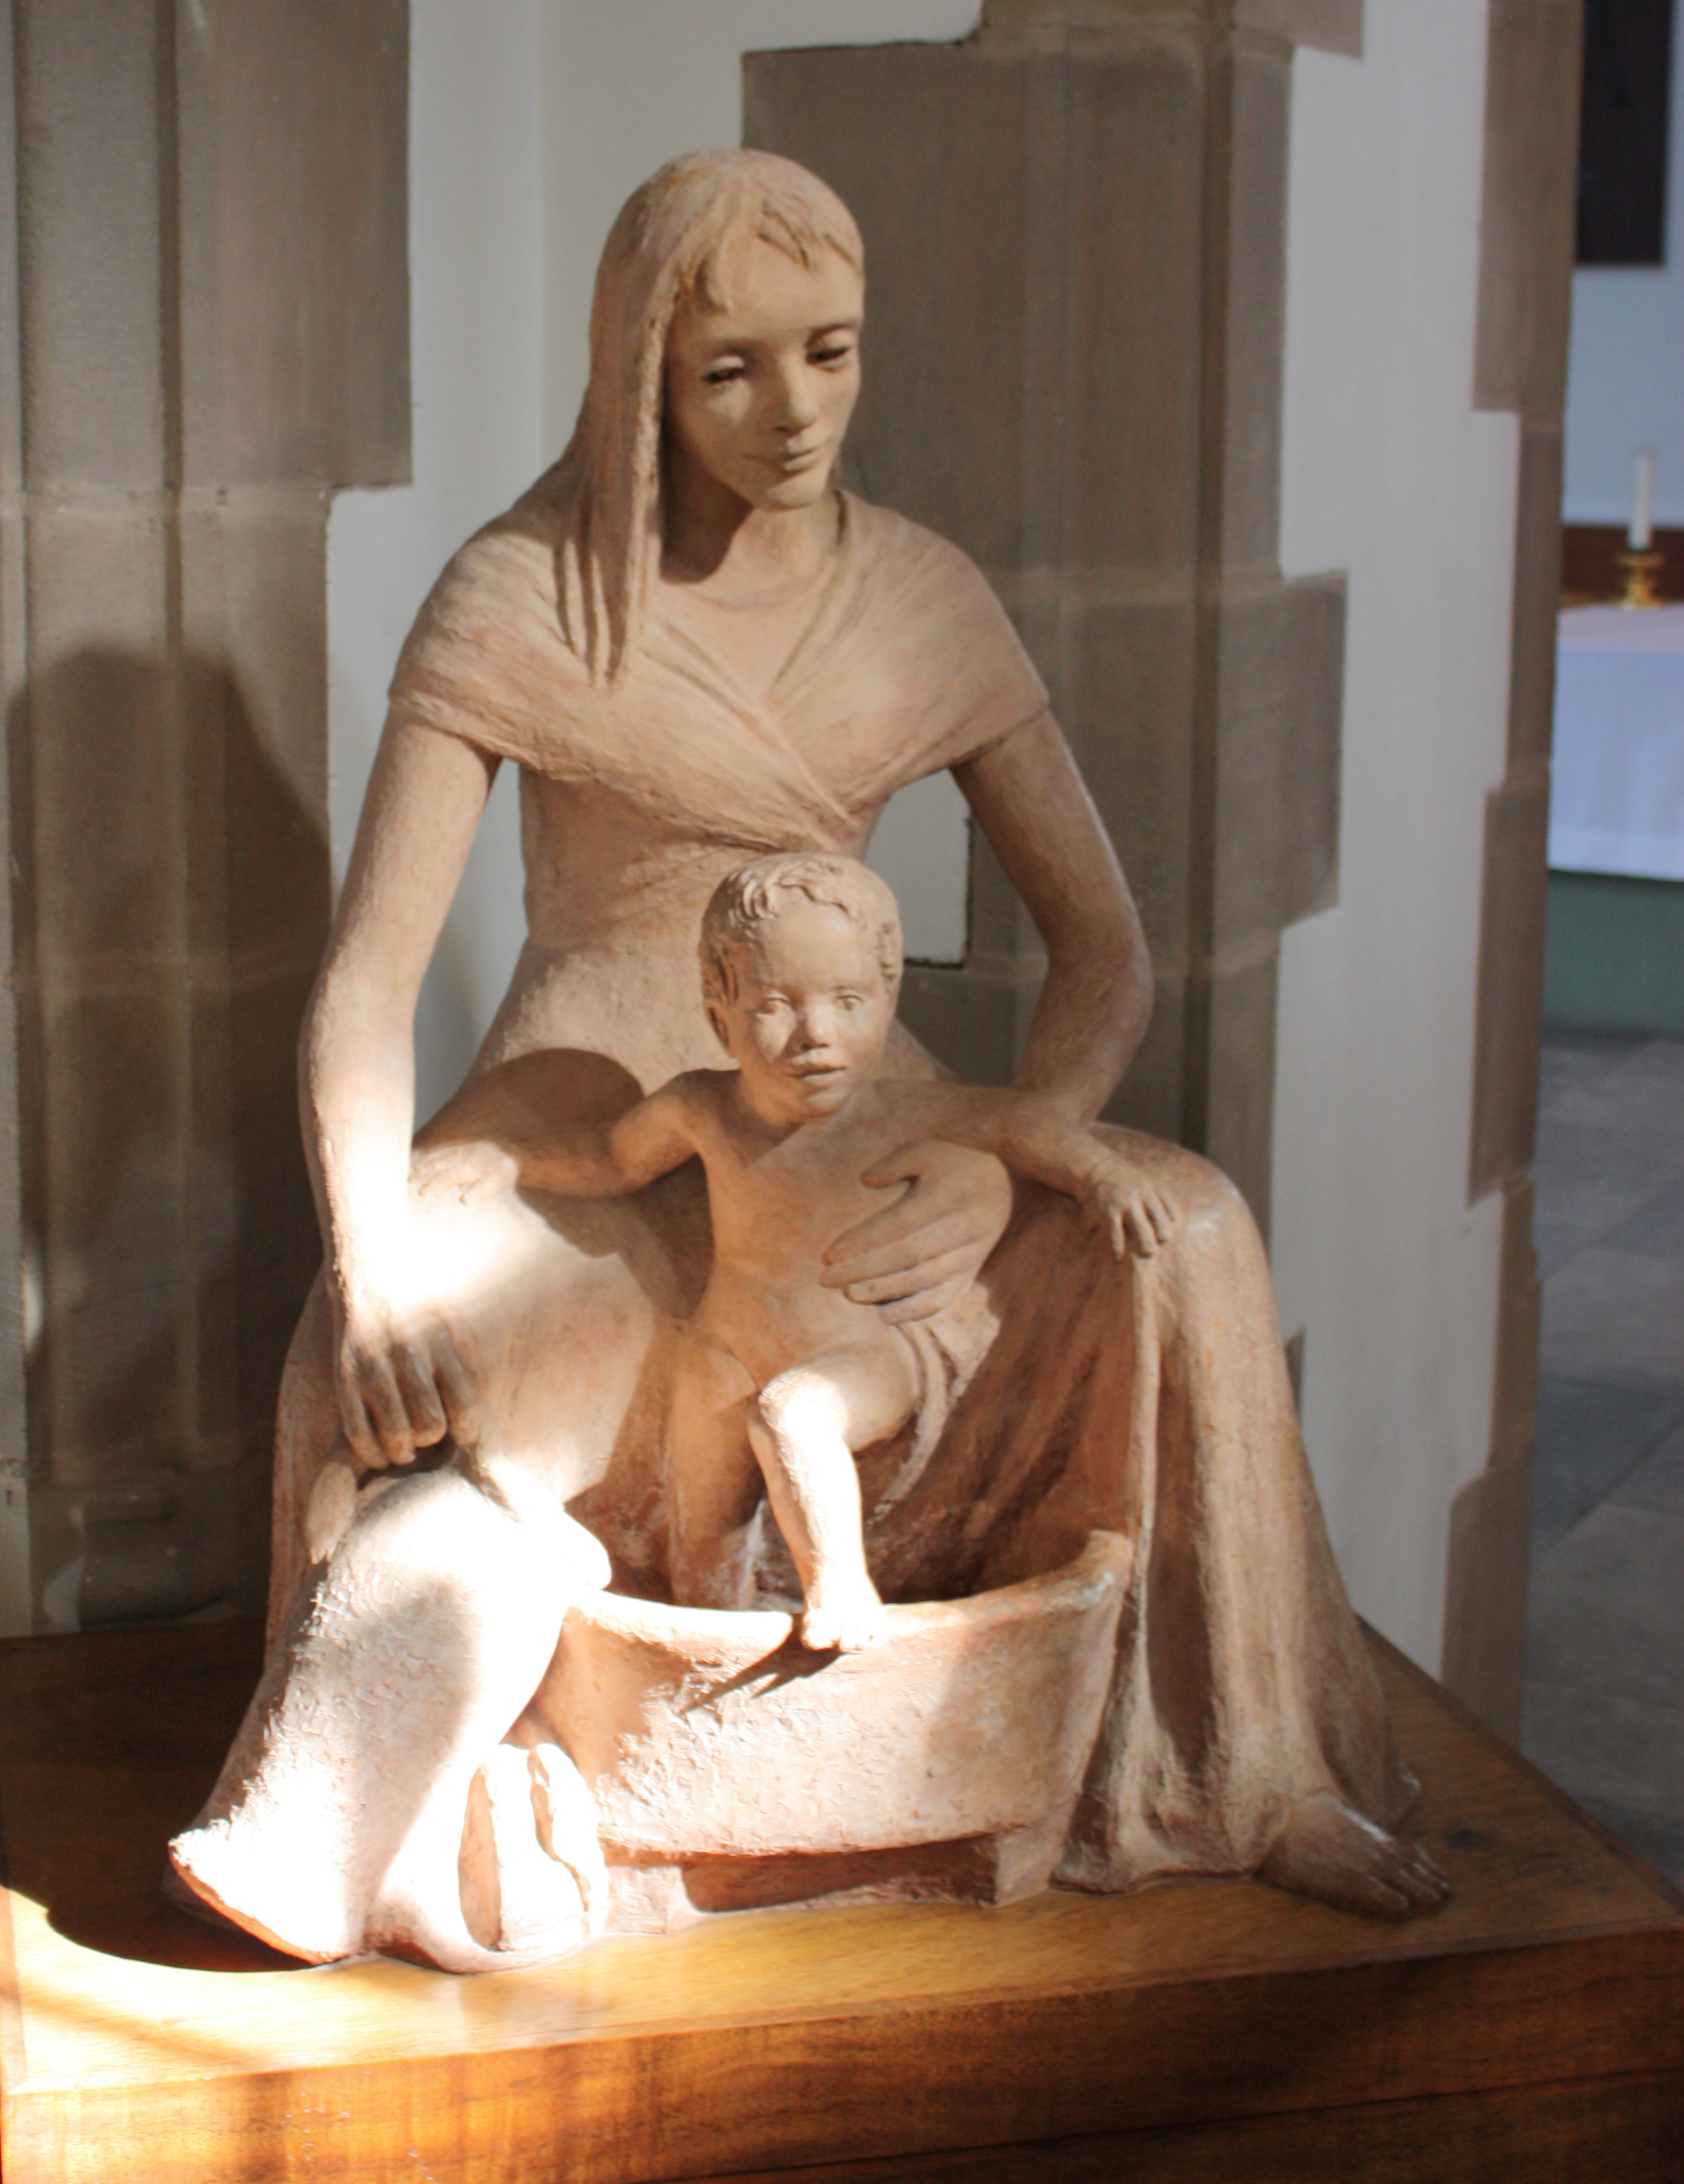 The madonna and child photo